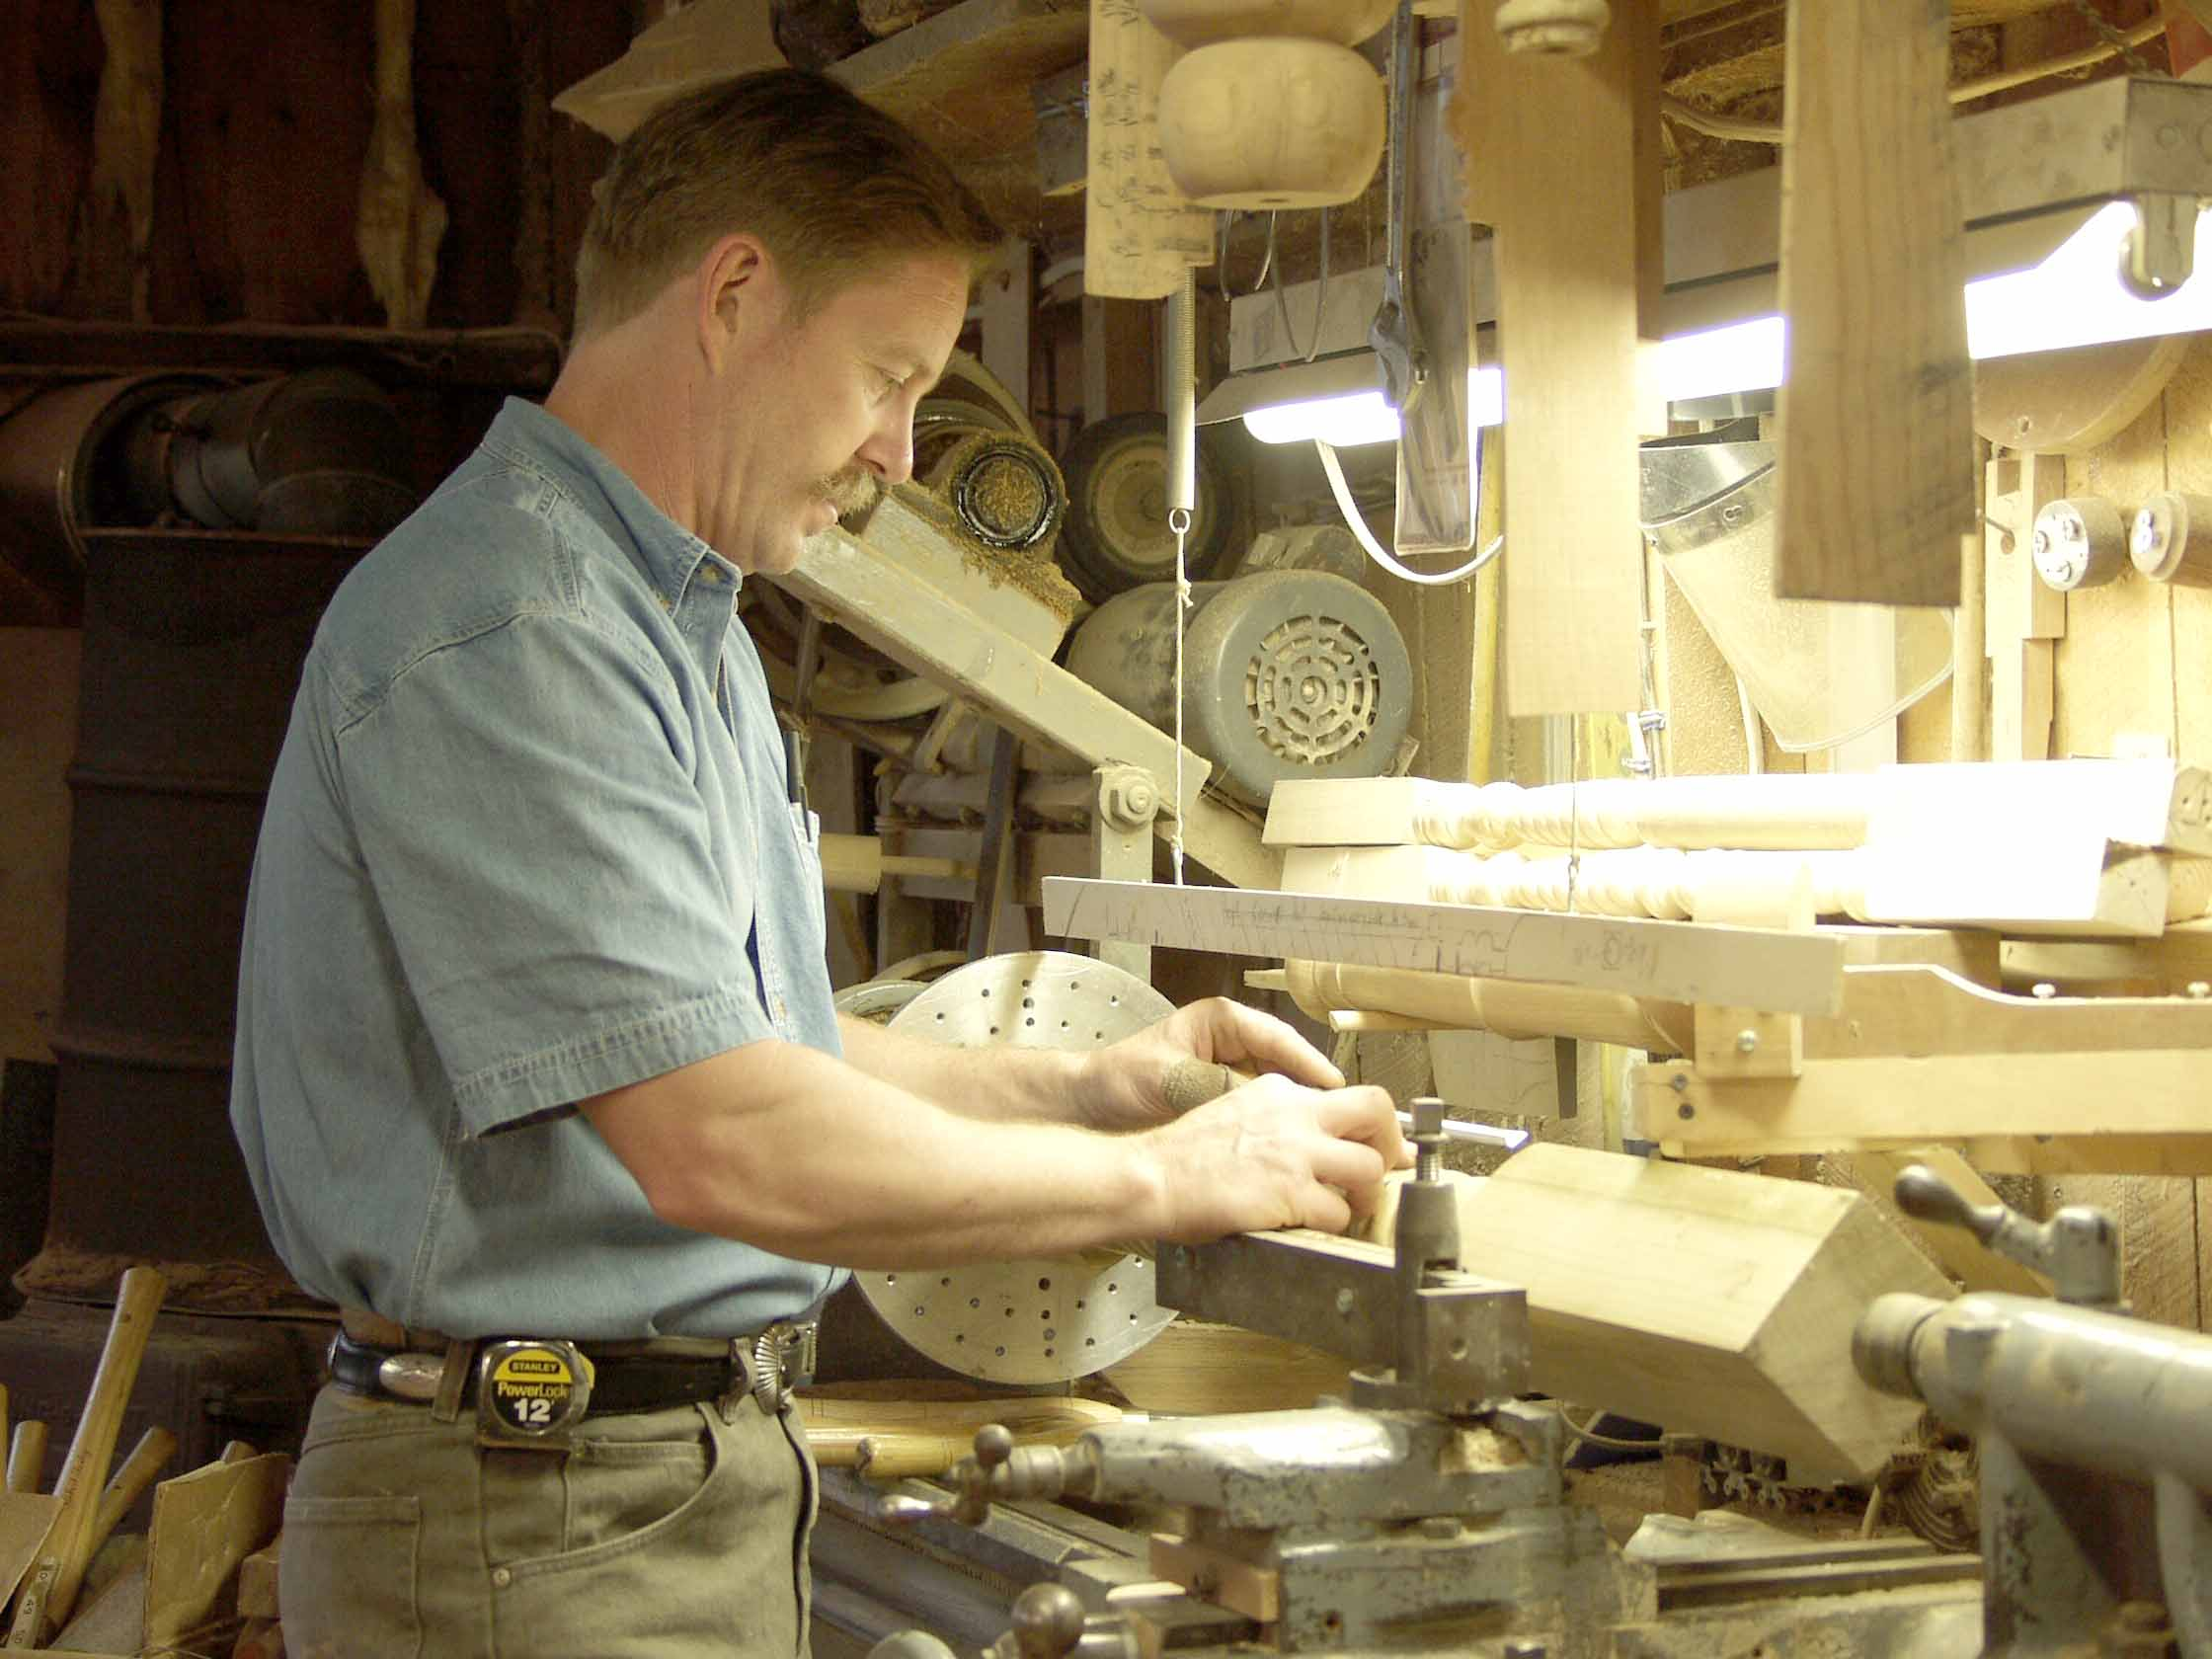 Jim working on the lathe